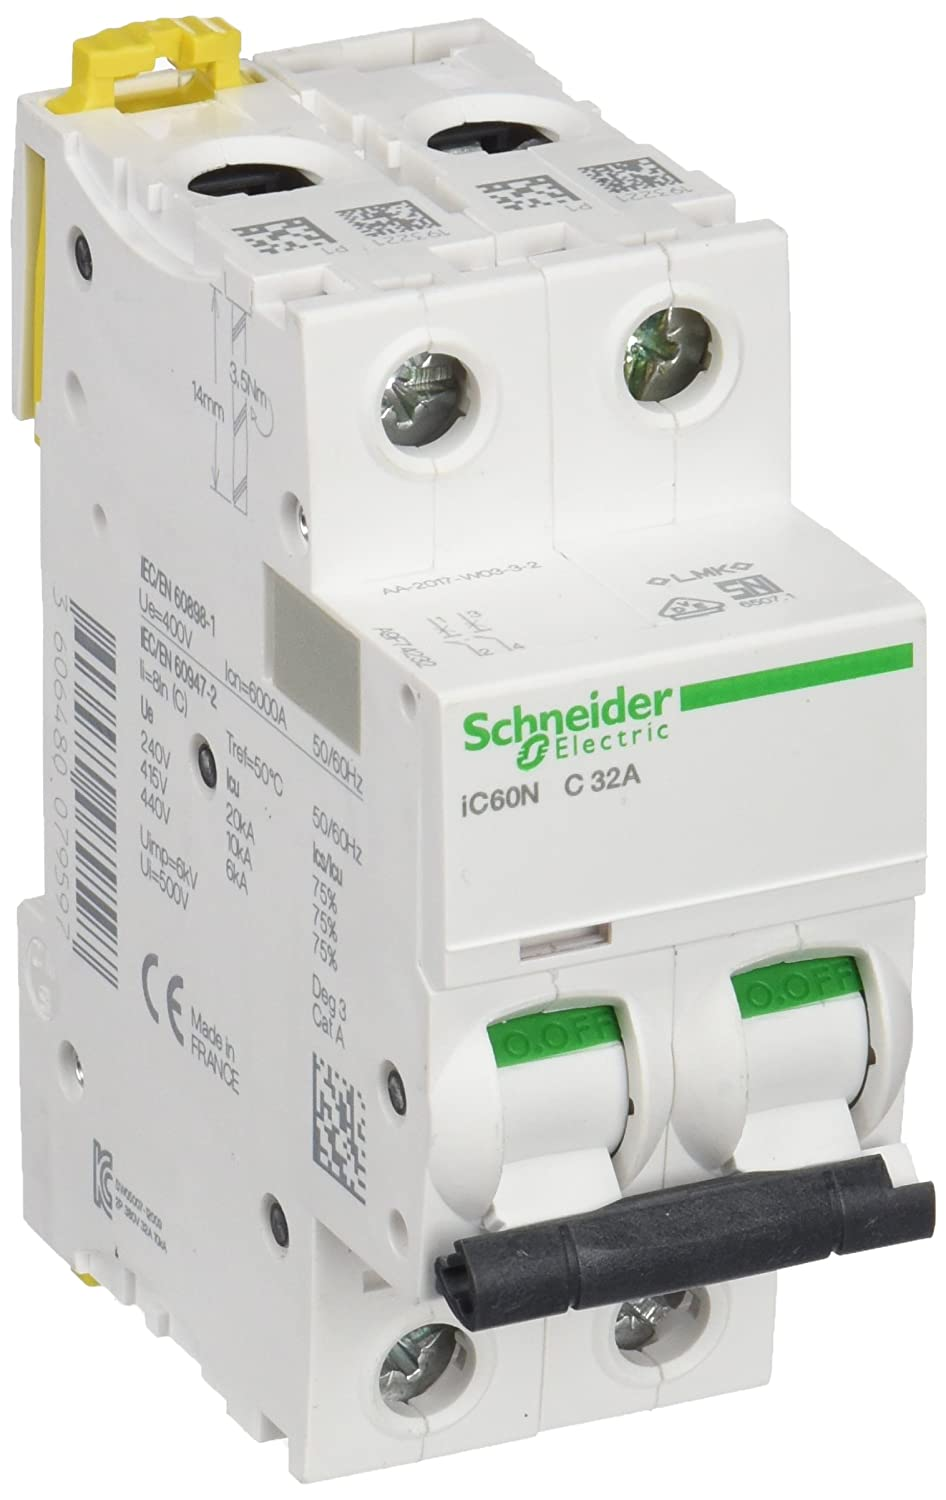 Schneider A9f74232 Ic60n 2p 32a C Mcb Miniature Circuit Breaker Off Module View White Set Of 6 Piece Business Industry Science